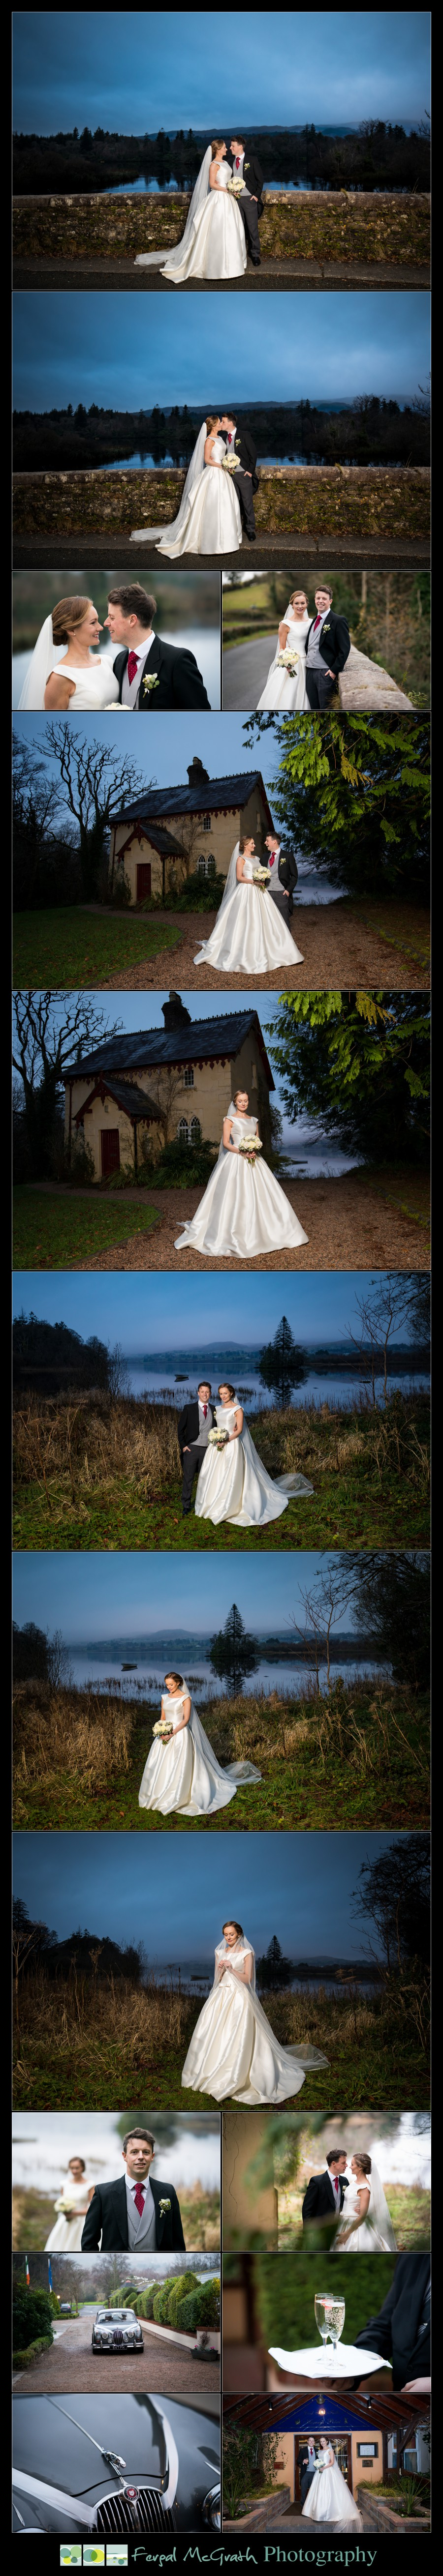 Harveys Point Hotel Winter Weddings bride and groom wedding photos on the shore of lough eske in donegal